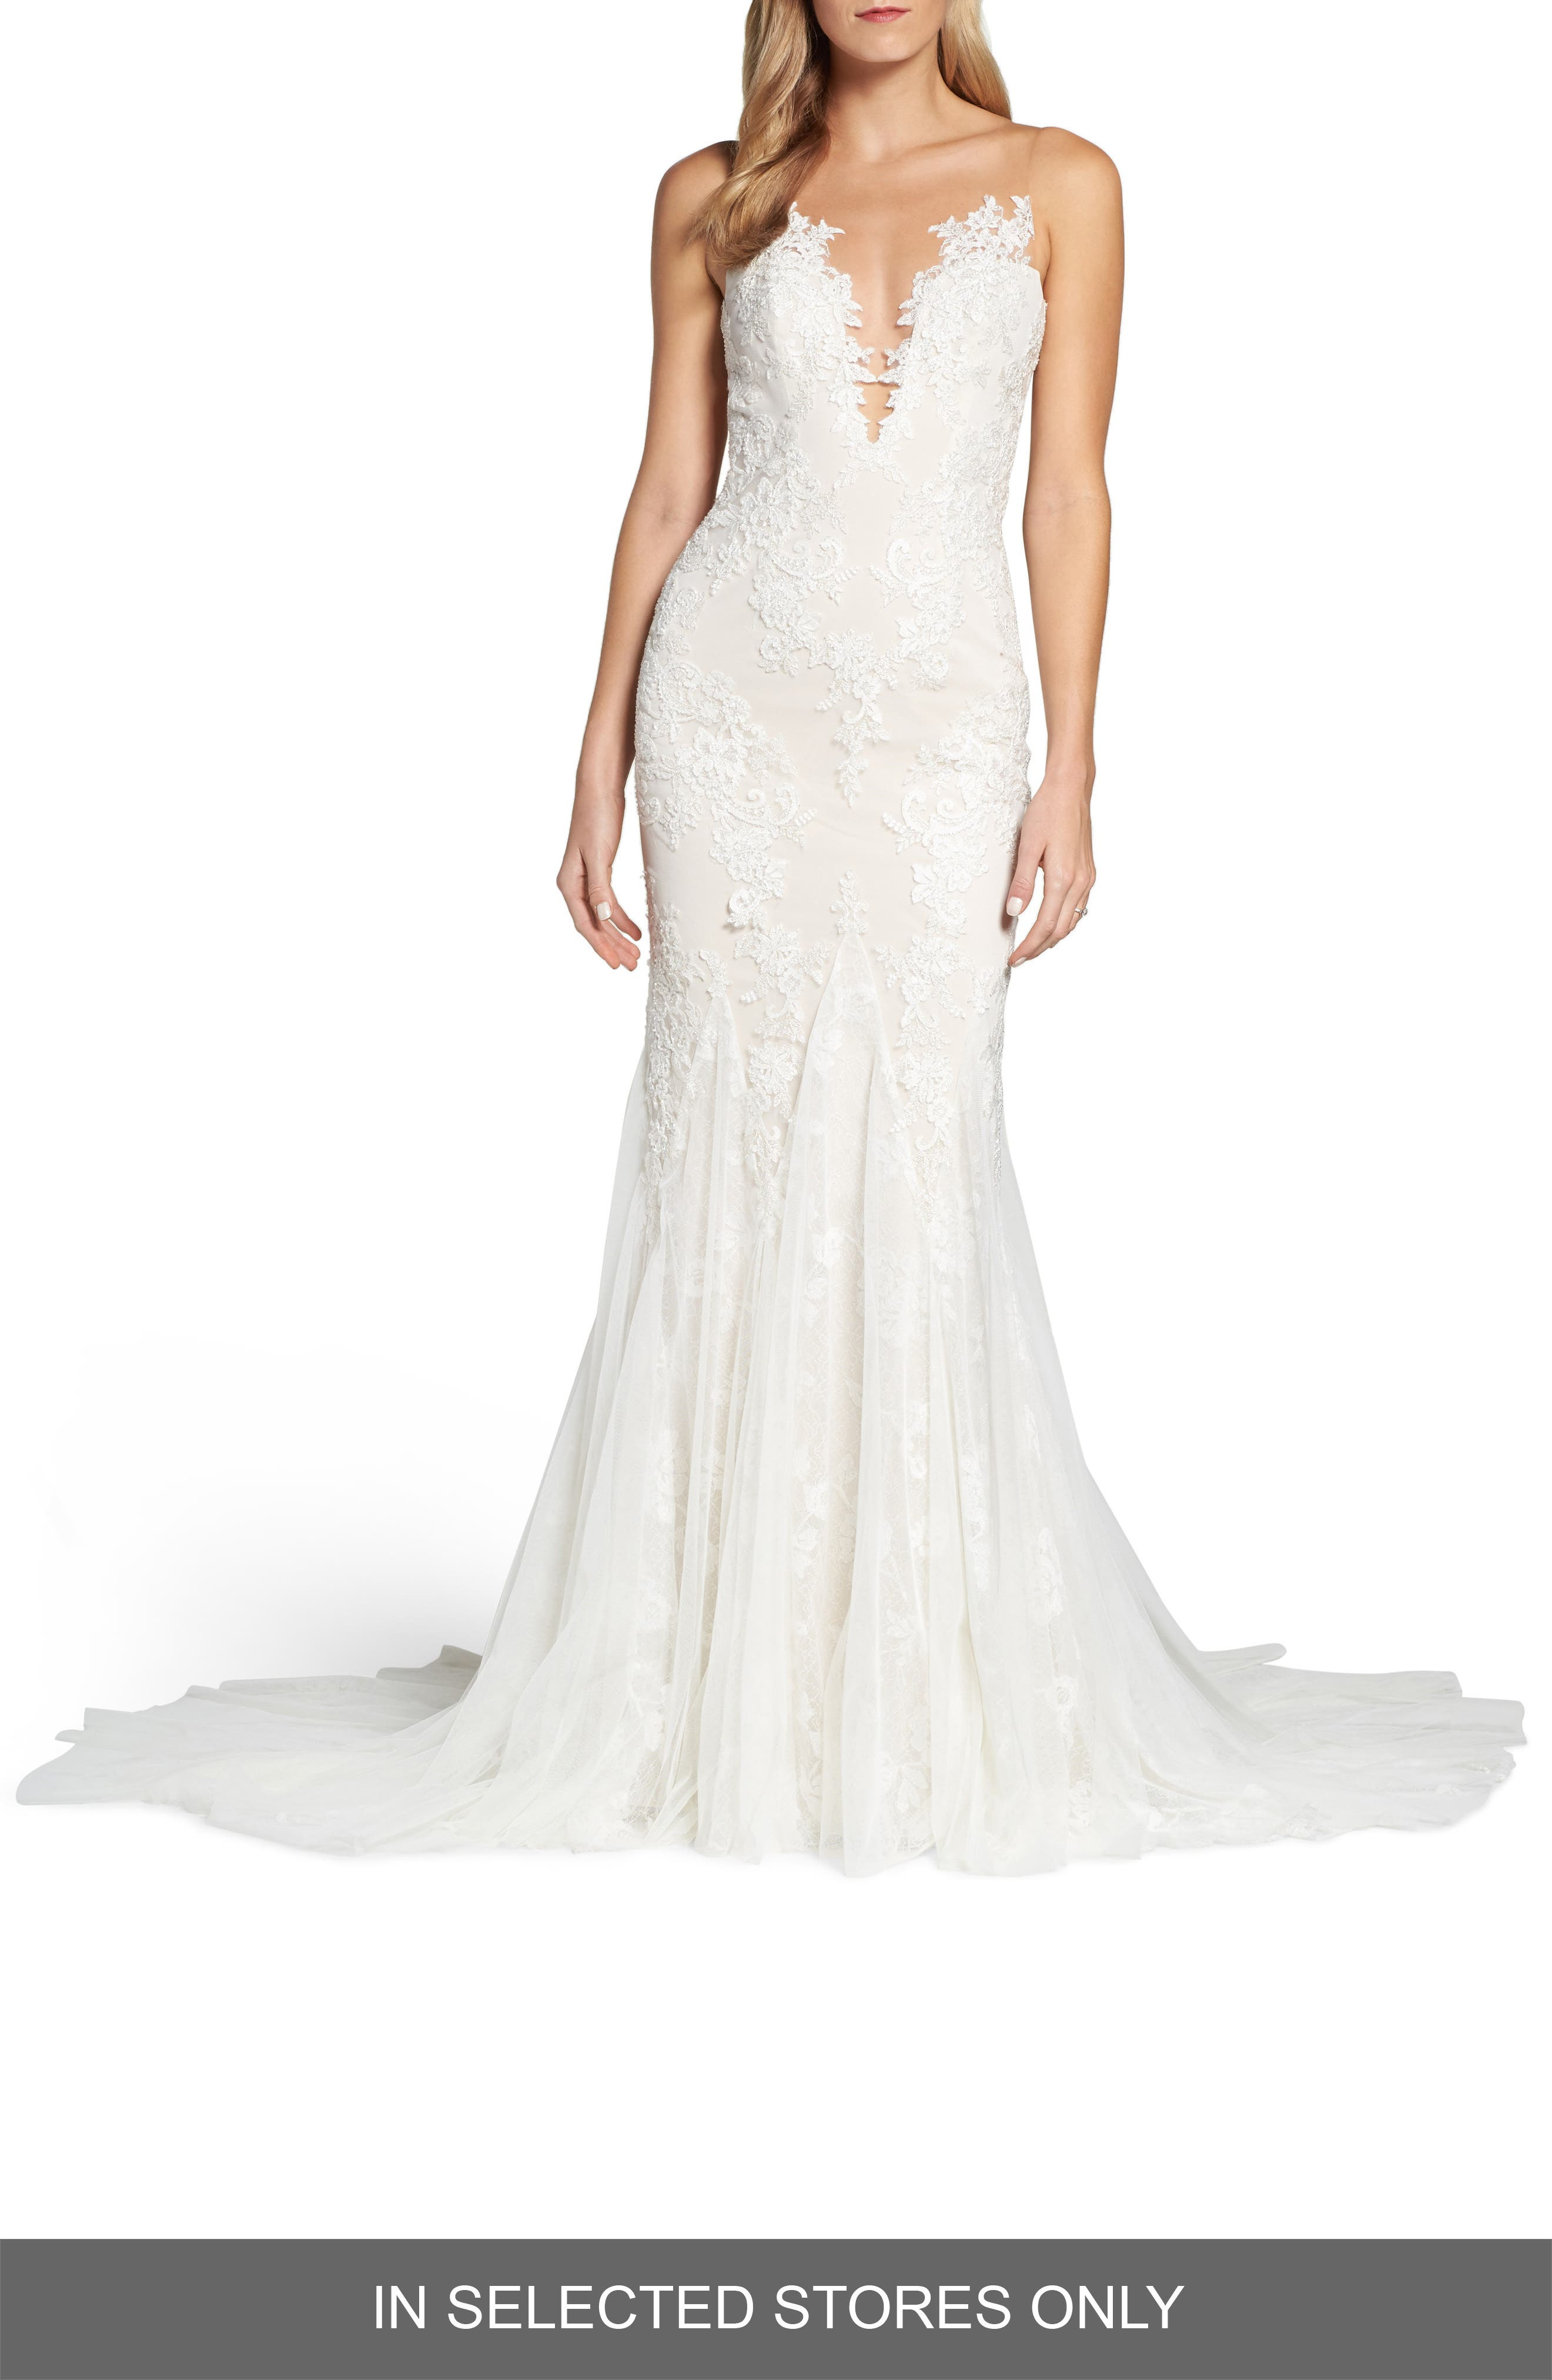 Daisy Illusion V-Neck Gown,                             Main thumbnail 1, color,                             OFF WHITE/ SOFT NUDE